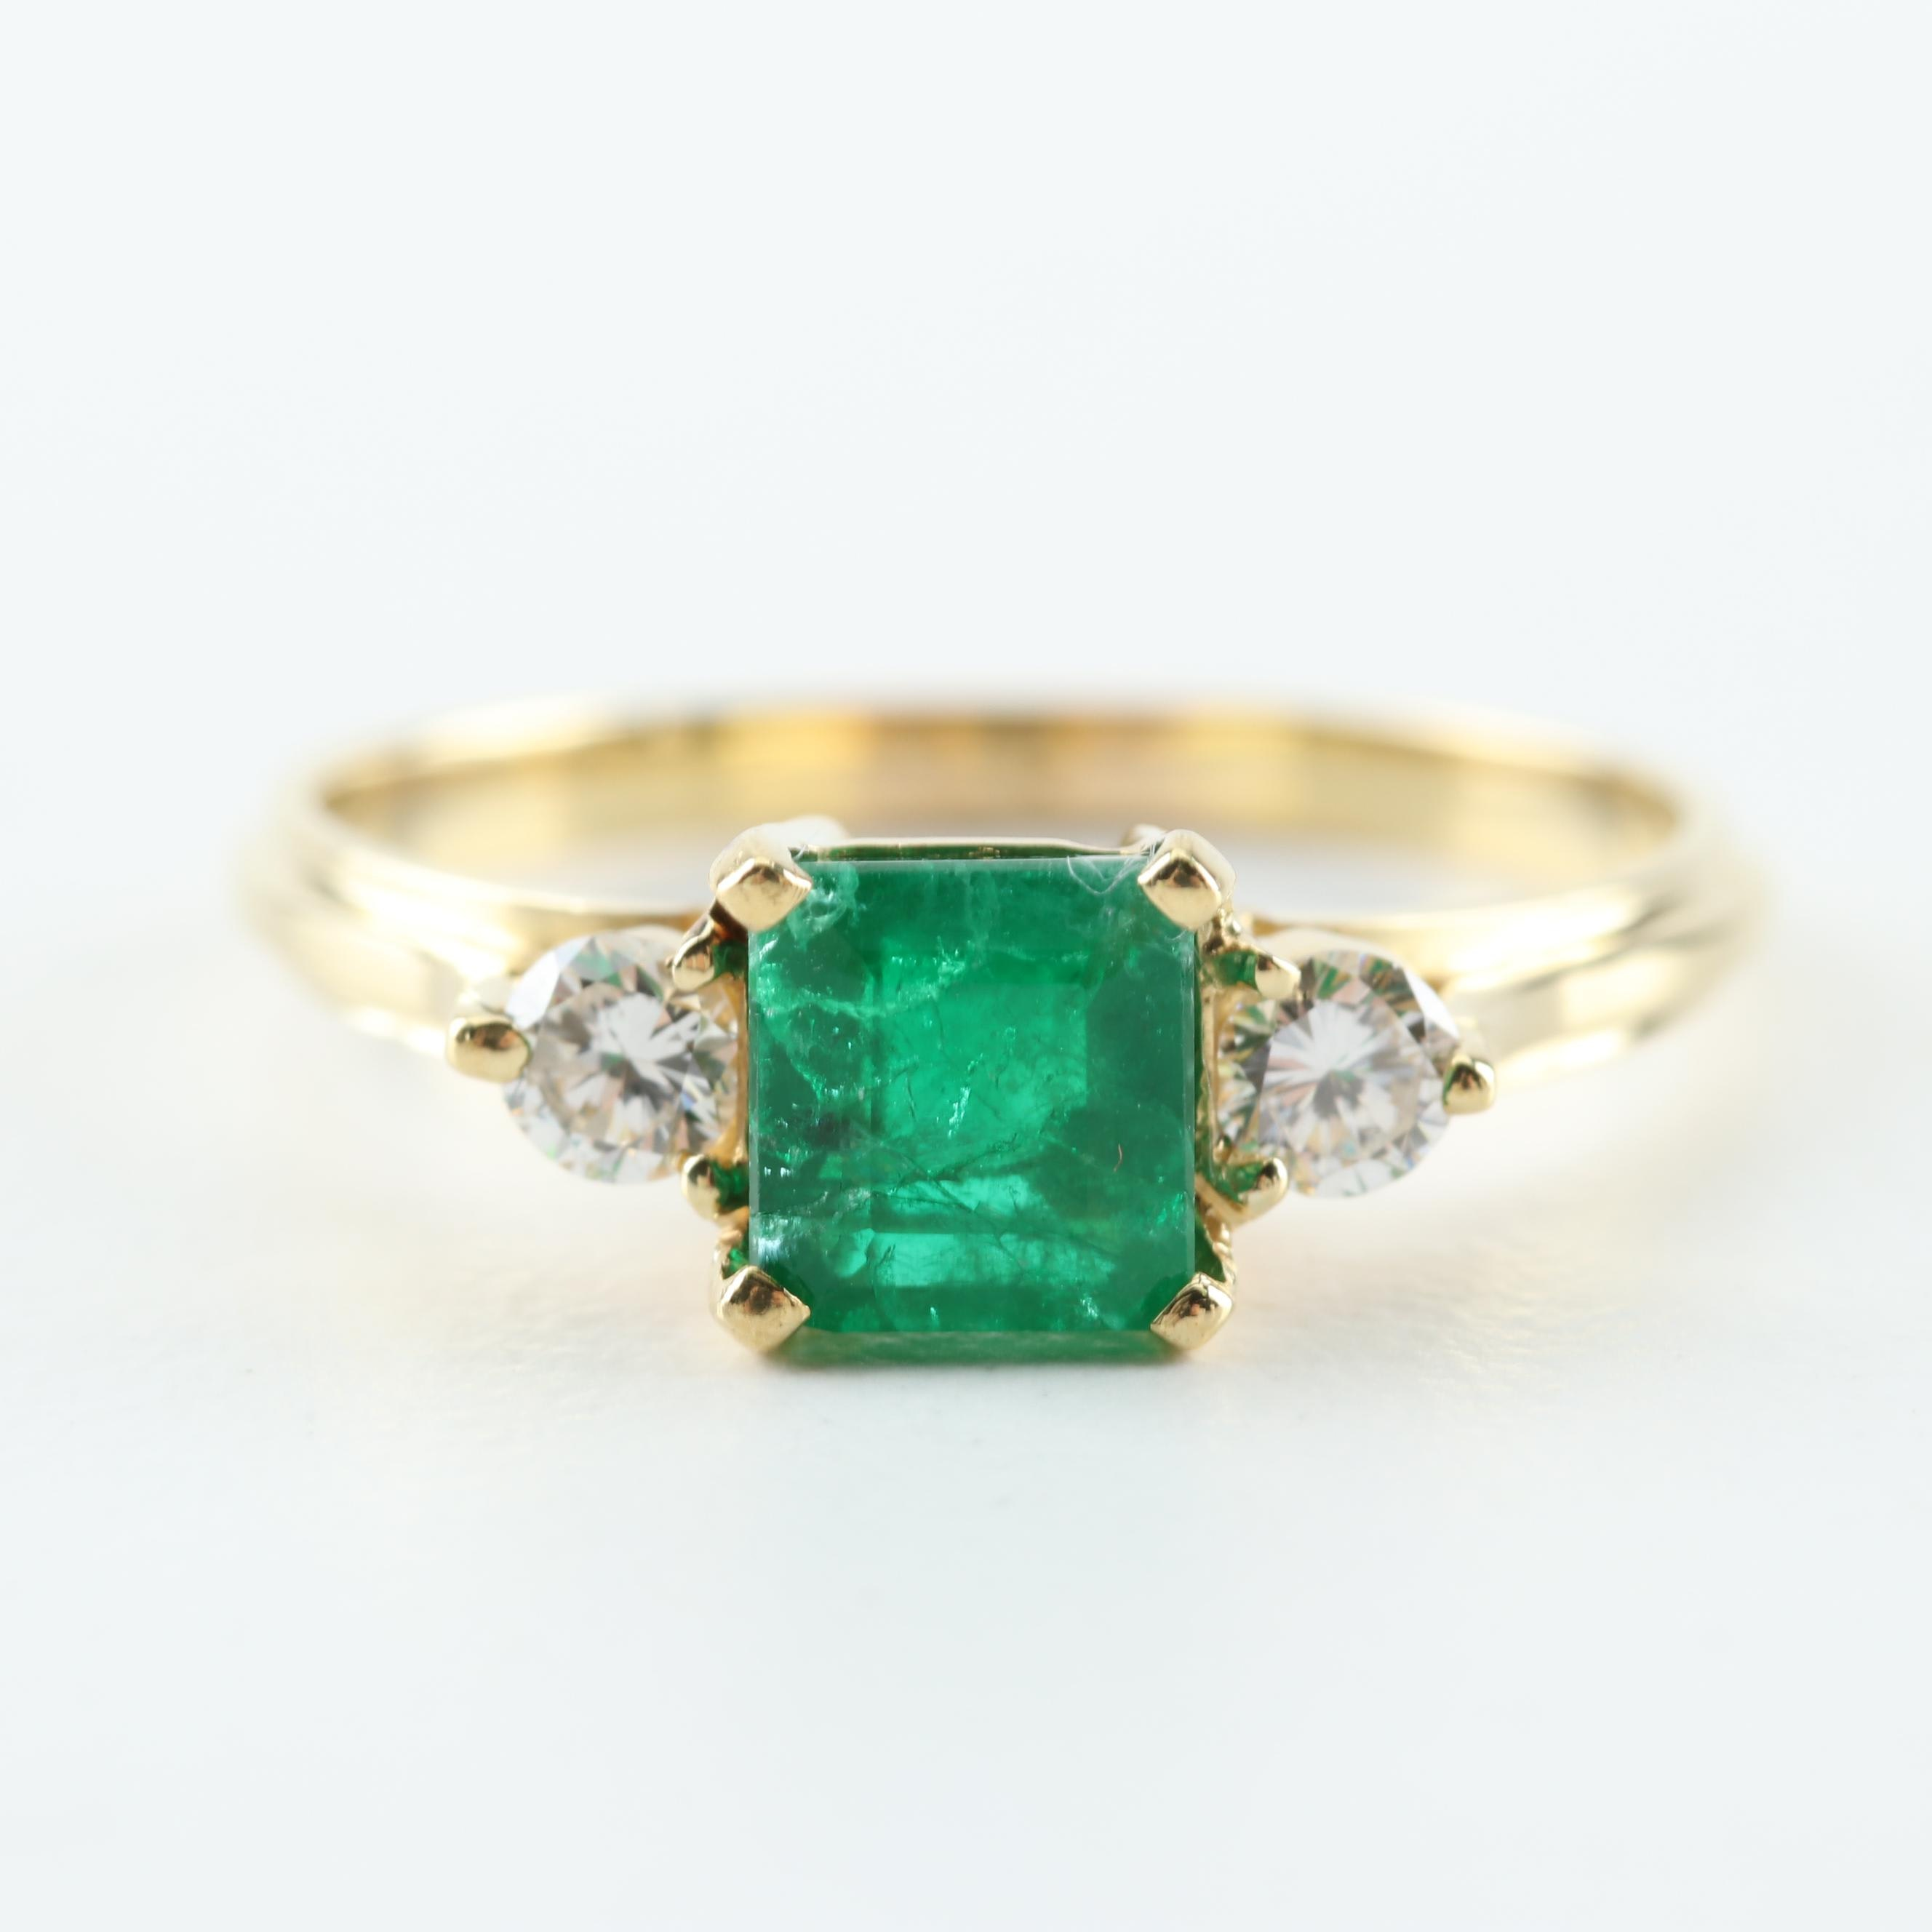 18K Yellow Gold, Emerald, and Diamond Ring